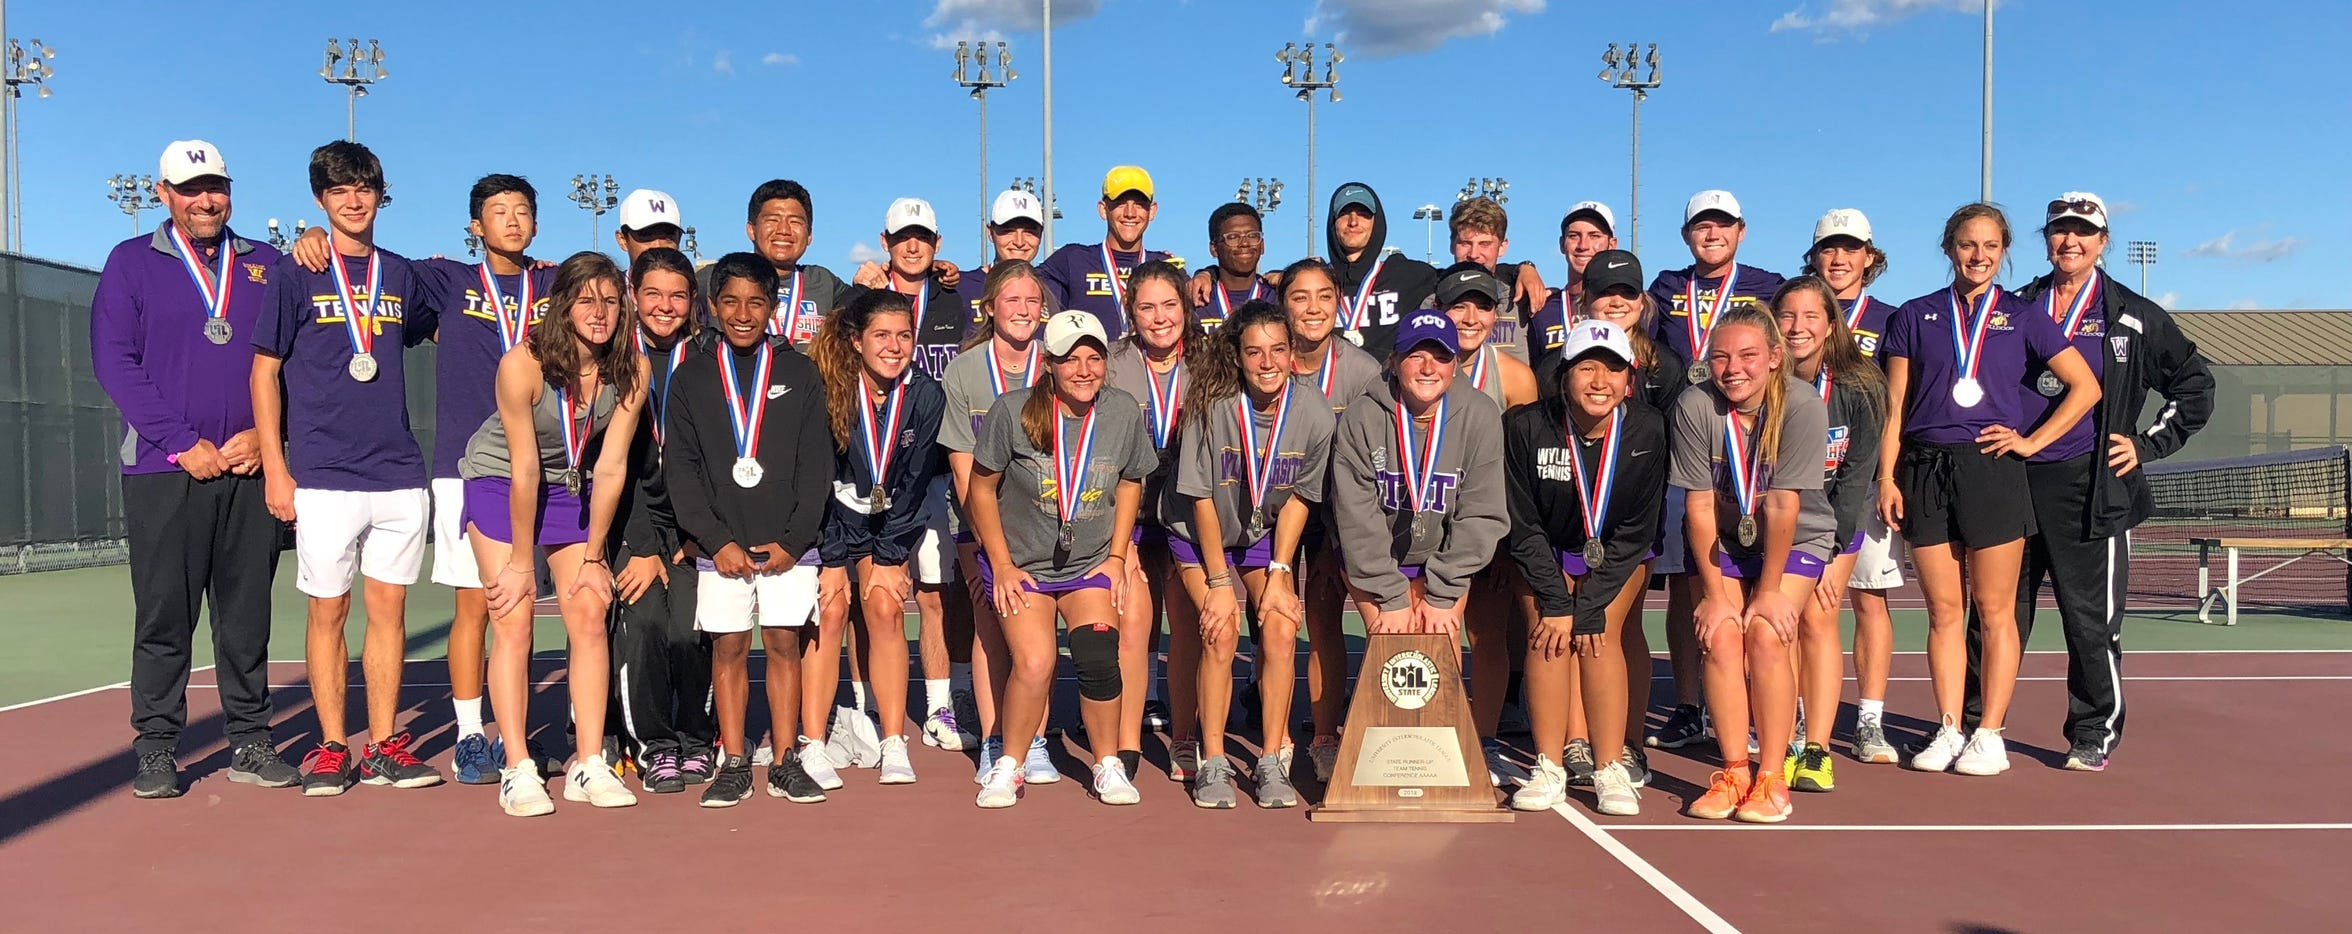 The Wylie tennis team poses with the Class 5A state runner-up trophy after falling to Highland Park in the final on Thursday in College Station.